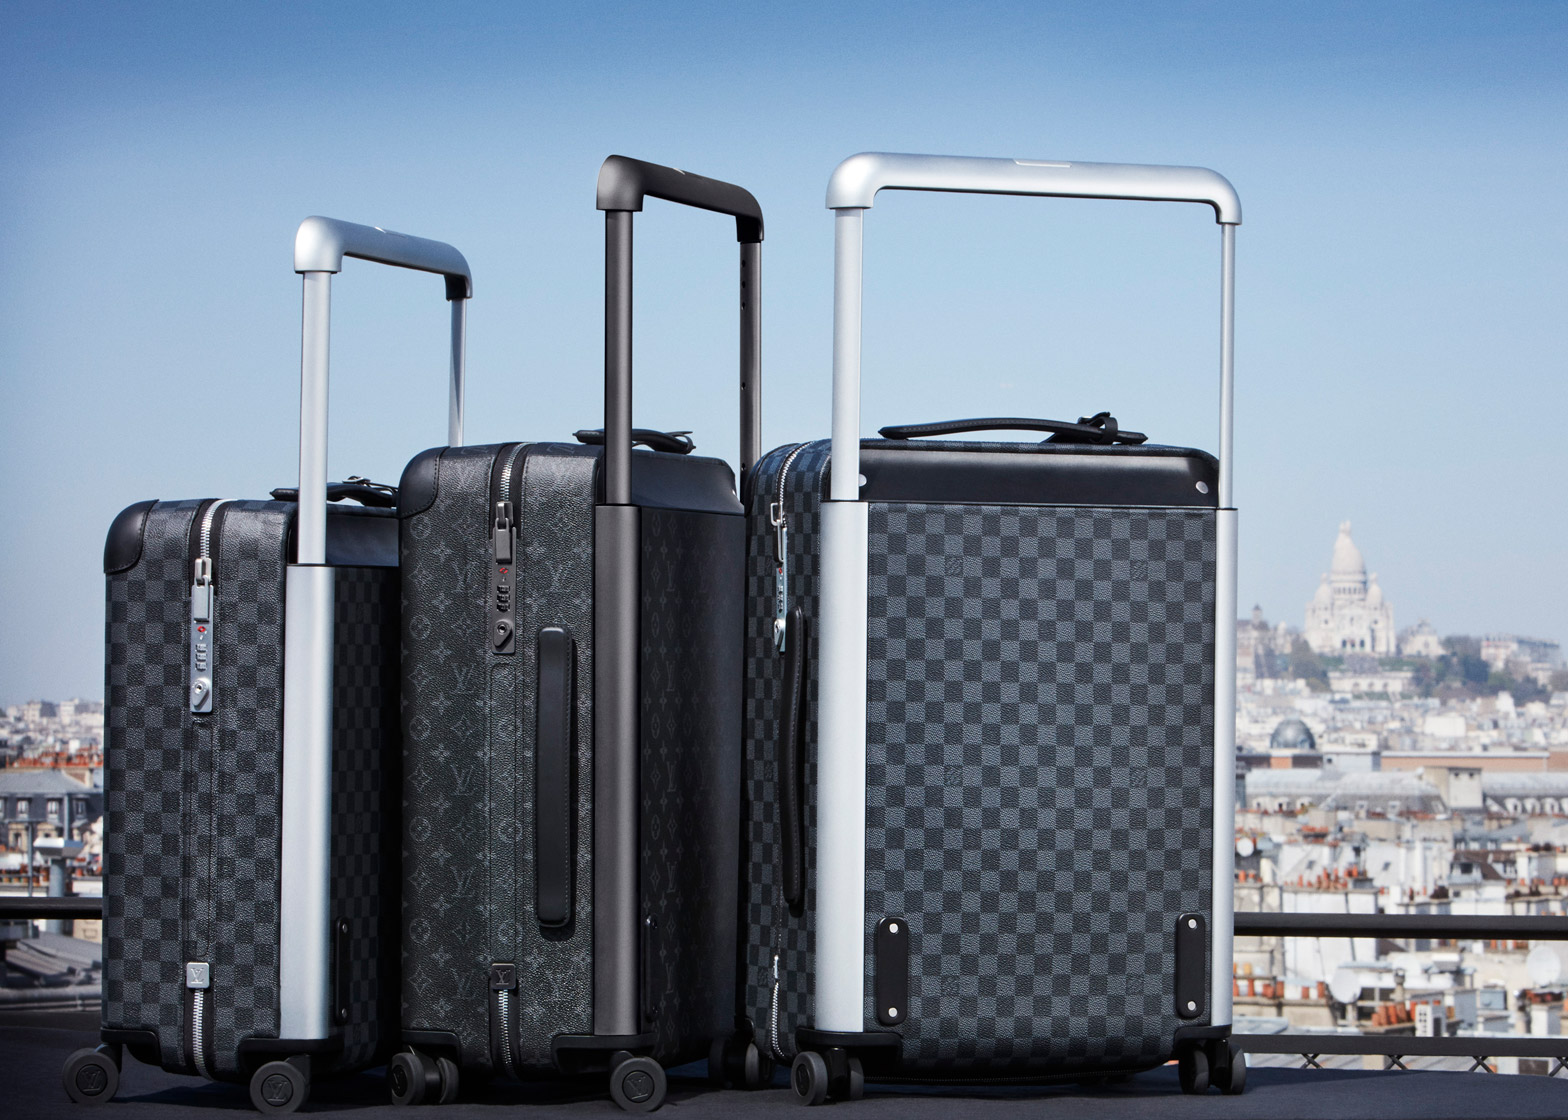 Marc Newson reinvents classic Louis Vuitton rolling luggage